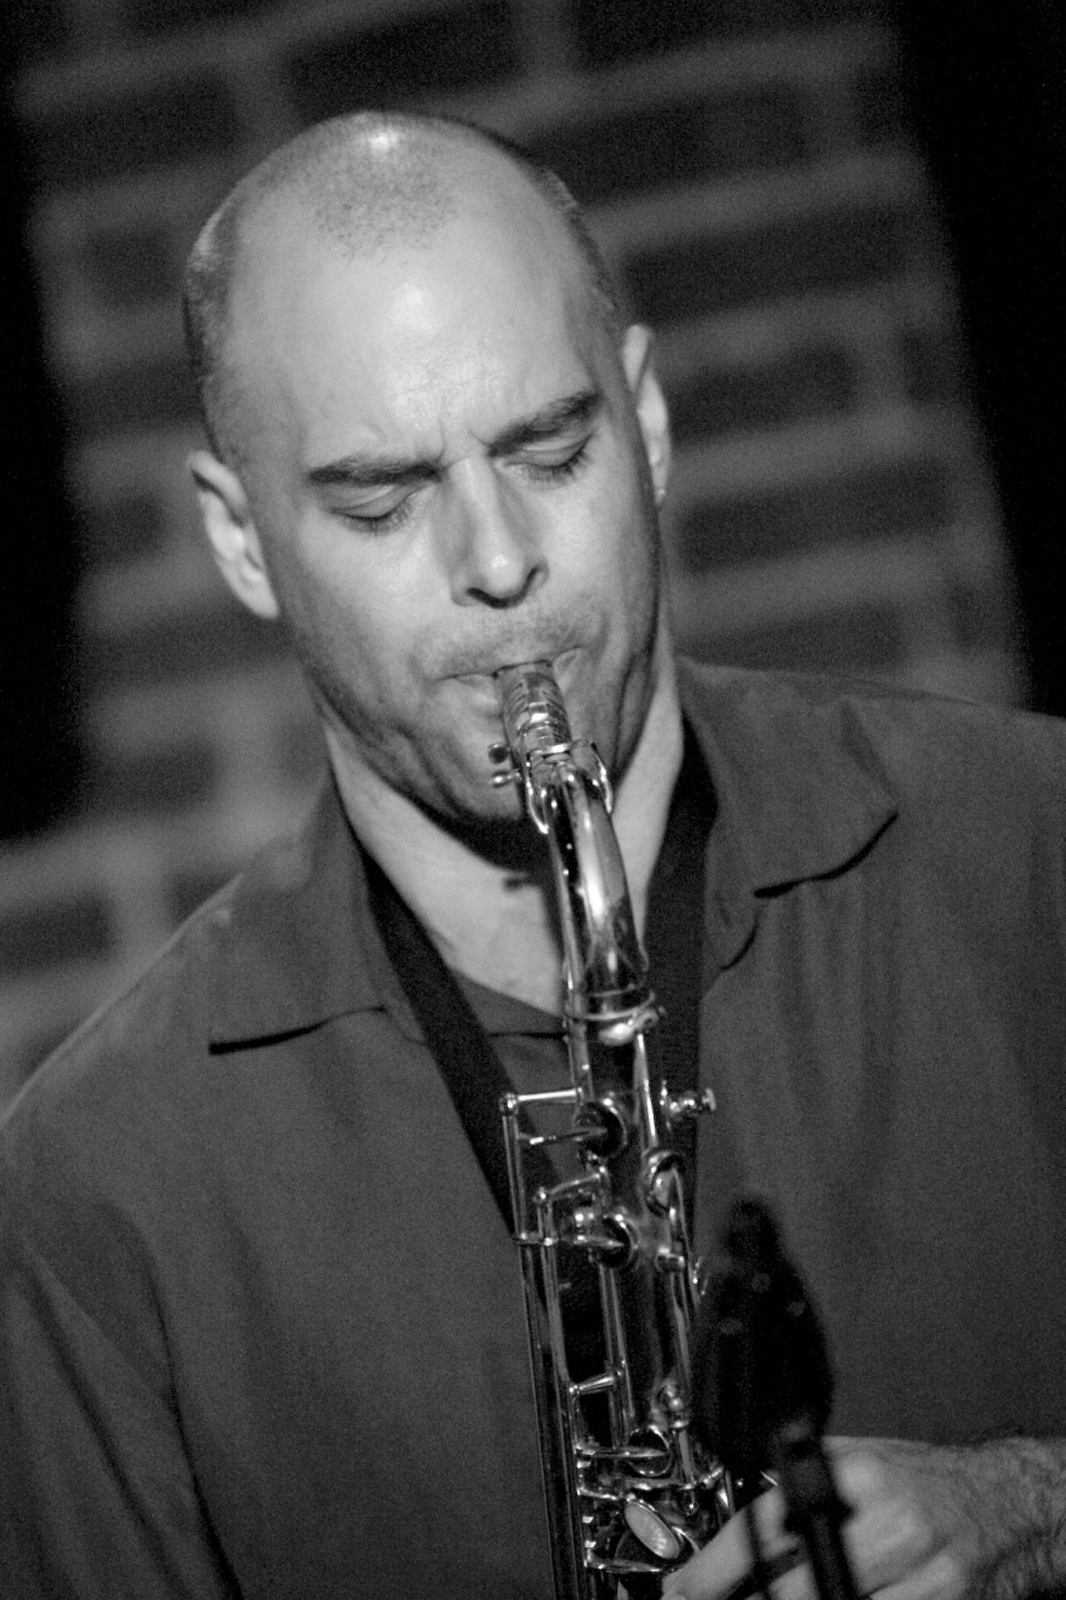 Robert Lewis, saxophone - Based in Charleston, saxophonist Robert Lewis is in demand as an artist and clinician. Lewis plays regularly in a trio – Lewis/Gregory/Wiltrout - with Gregory (piano) and Ron Wiltrout (drums). Lewis also performs in other jazz ensembles, and is the lead alto player of the acclaimed Charleston Jazz Orchestra (CJO). Robert Lewis writes many arrangements and compositions for the CJO and his smaller groups. Lewis recently wrote a widely acclaimed jazz suite for the CJO on Gershwin's Porgy and Bess. He is also the Director of Jazz Studies at the College of Charleston.photo: Reece Moore